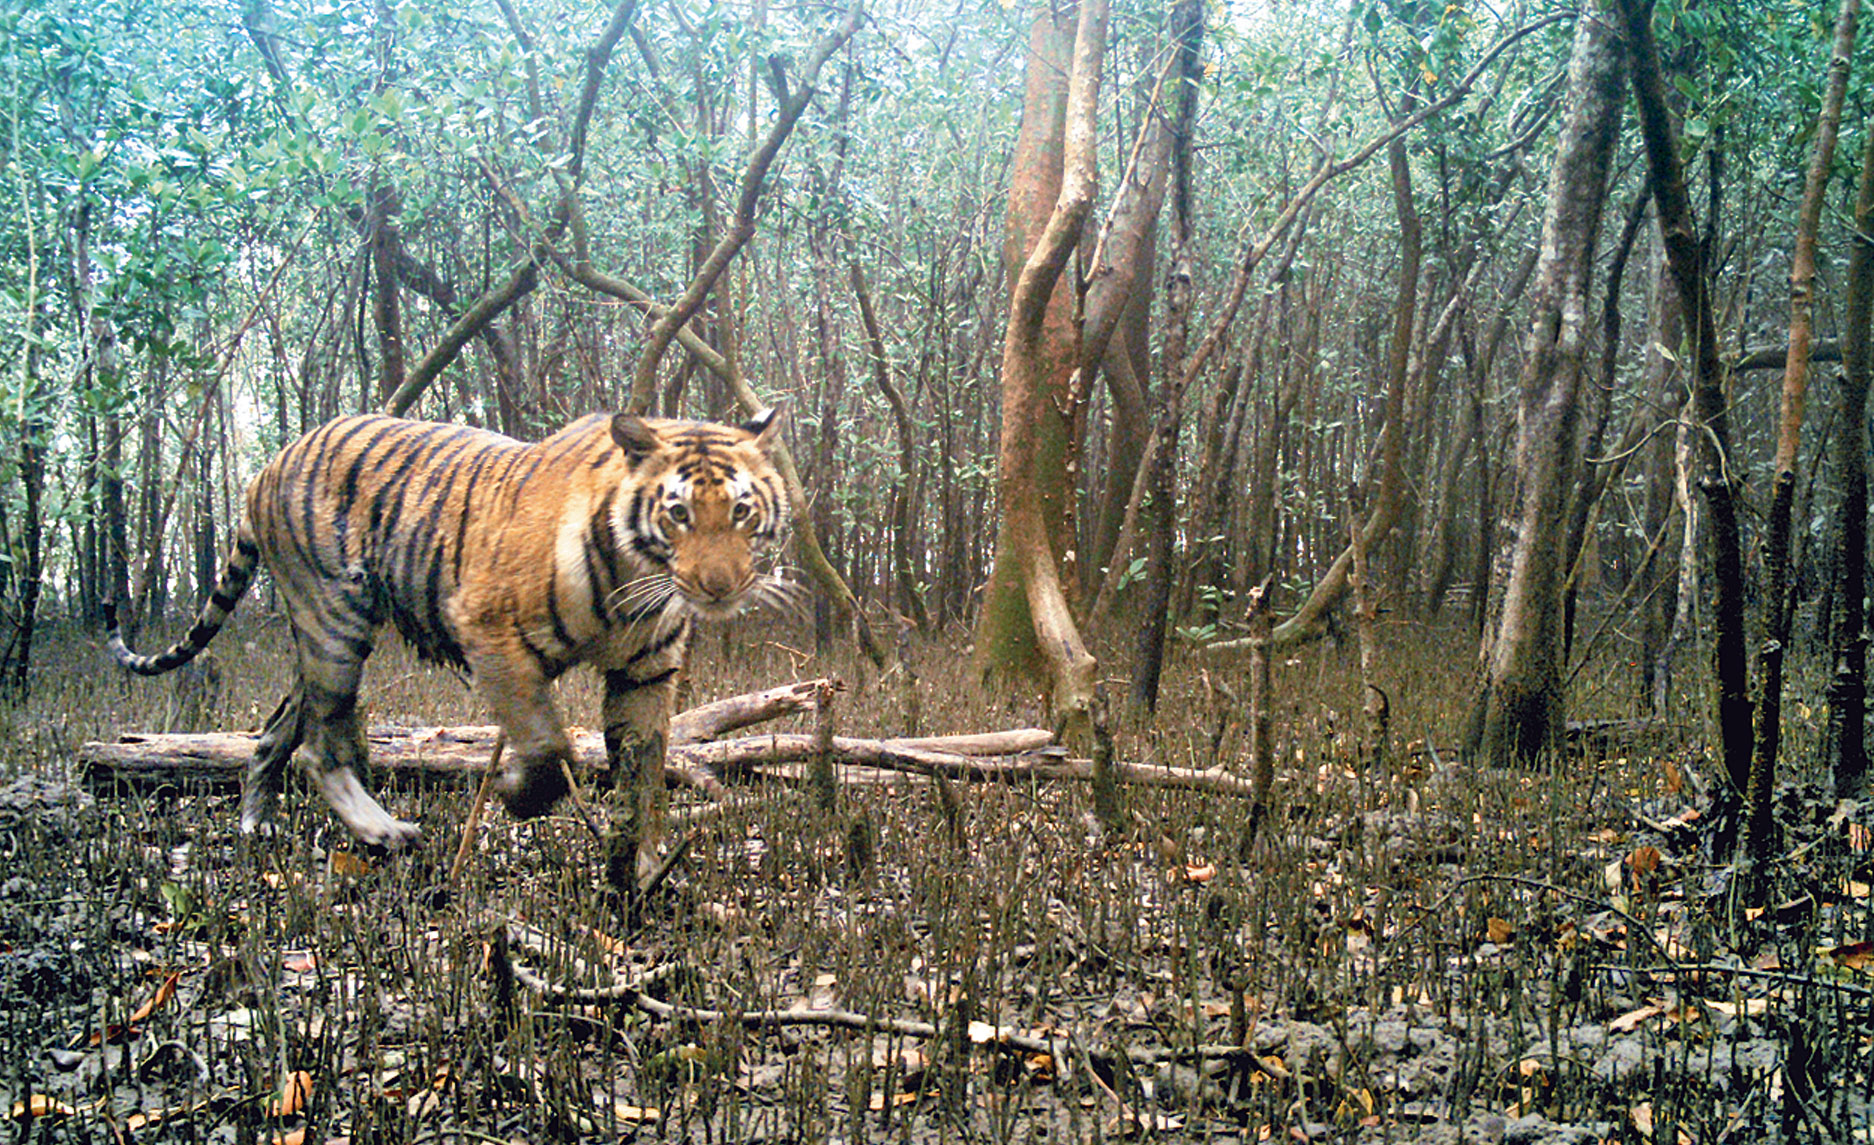 Tiger images captured by camera traps in the Sunderbans as part of the 2018 census